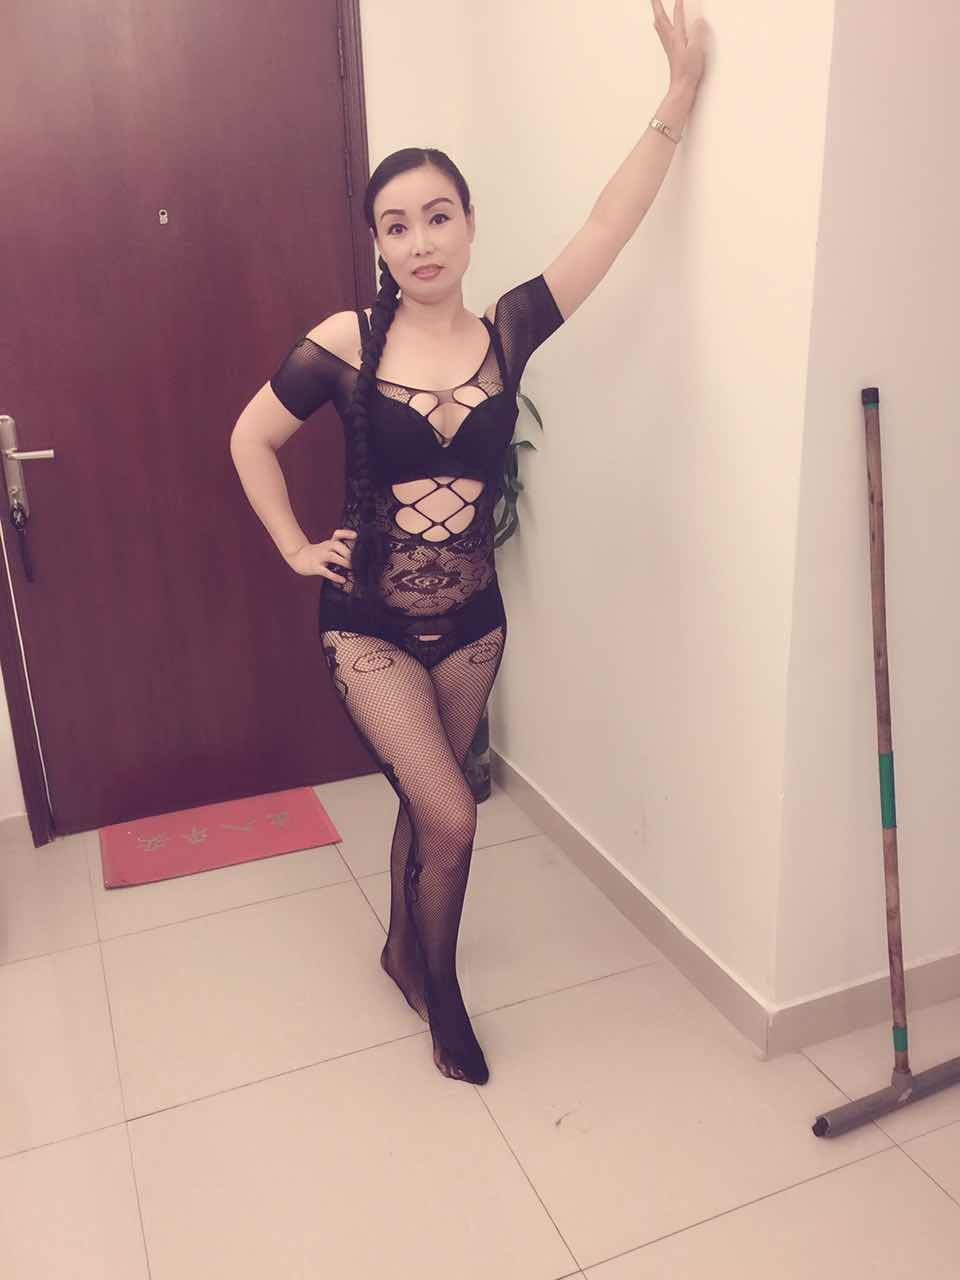 taiwan girl escort private escorts in hamilton